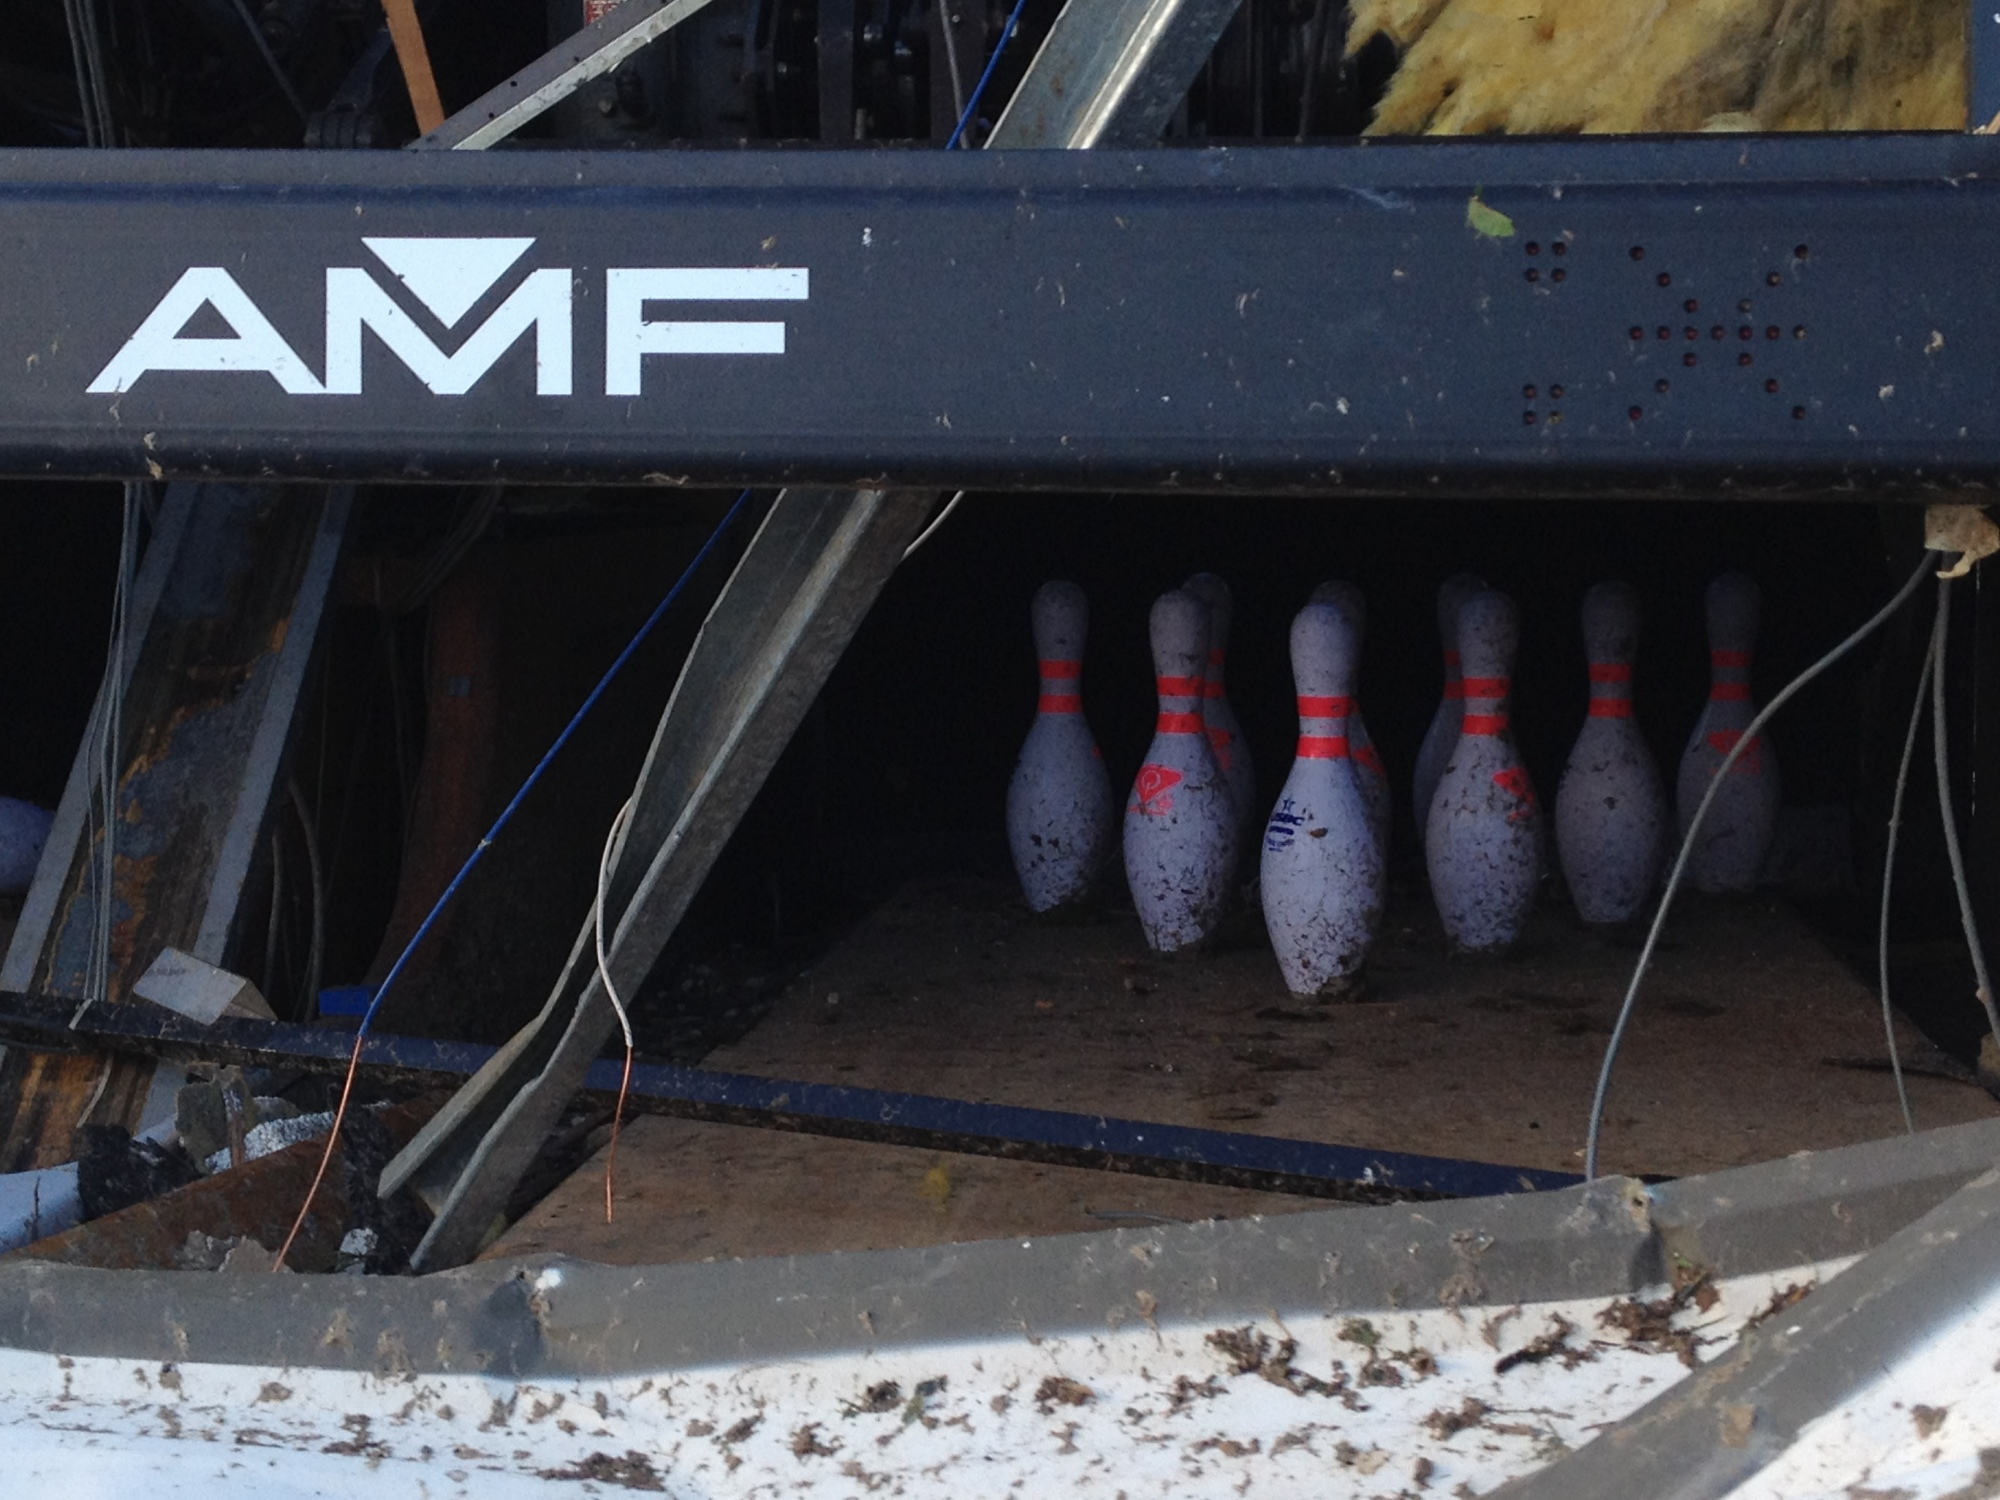 All 10 bowling pins in Lane 40 of the bowling alley in Moore, Oklahoma across the street from the damaged medical center and the damaged Warren movie theater.